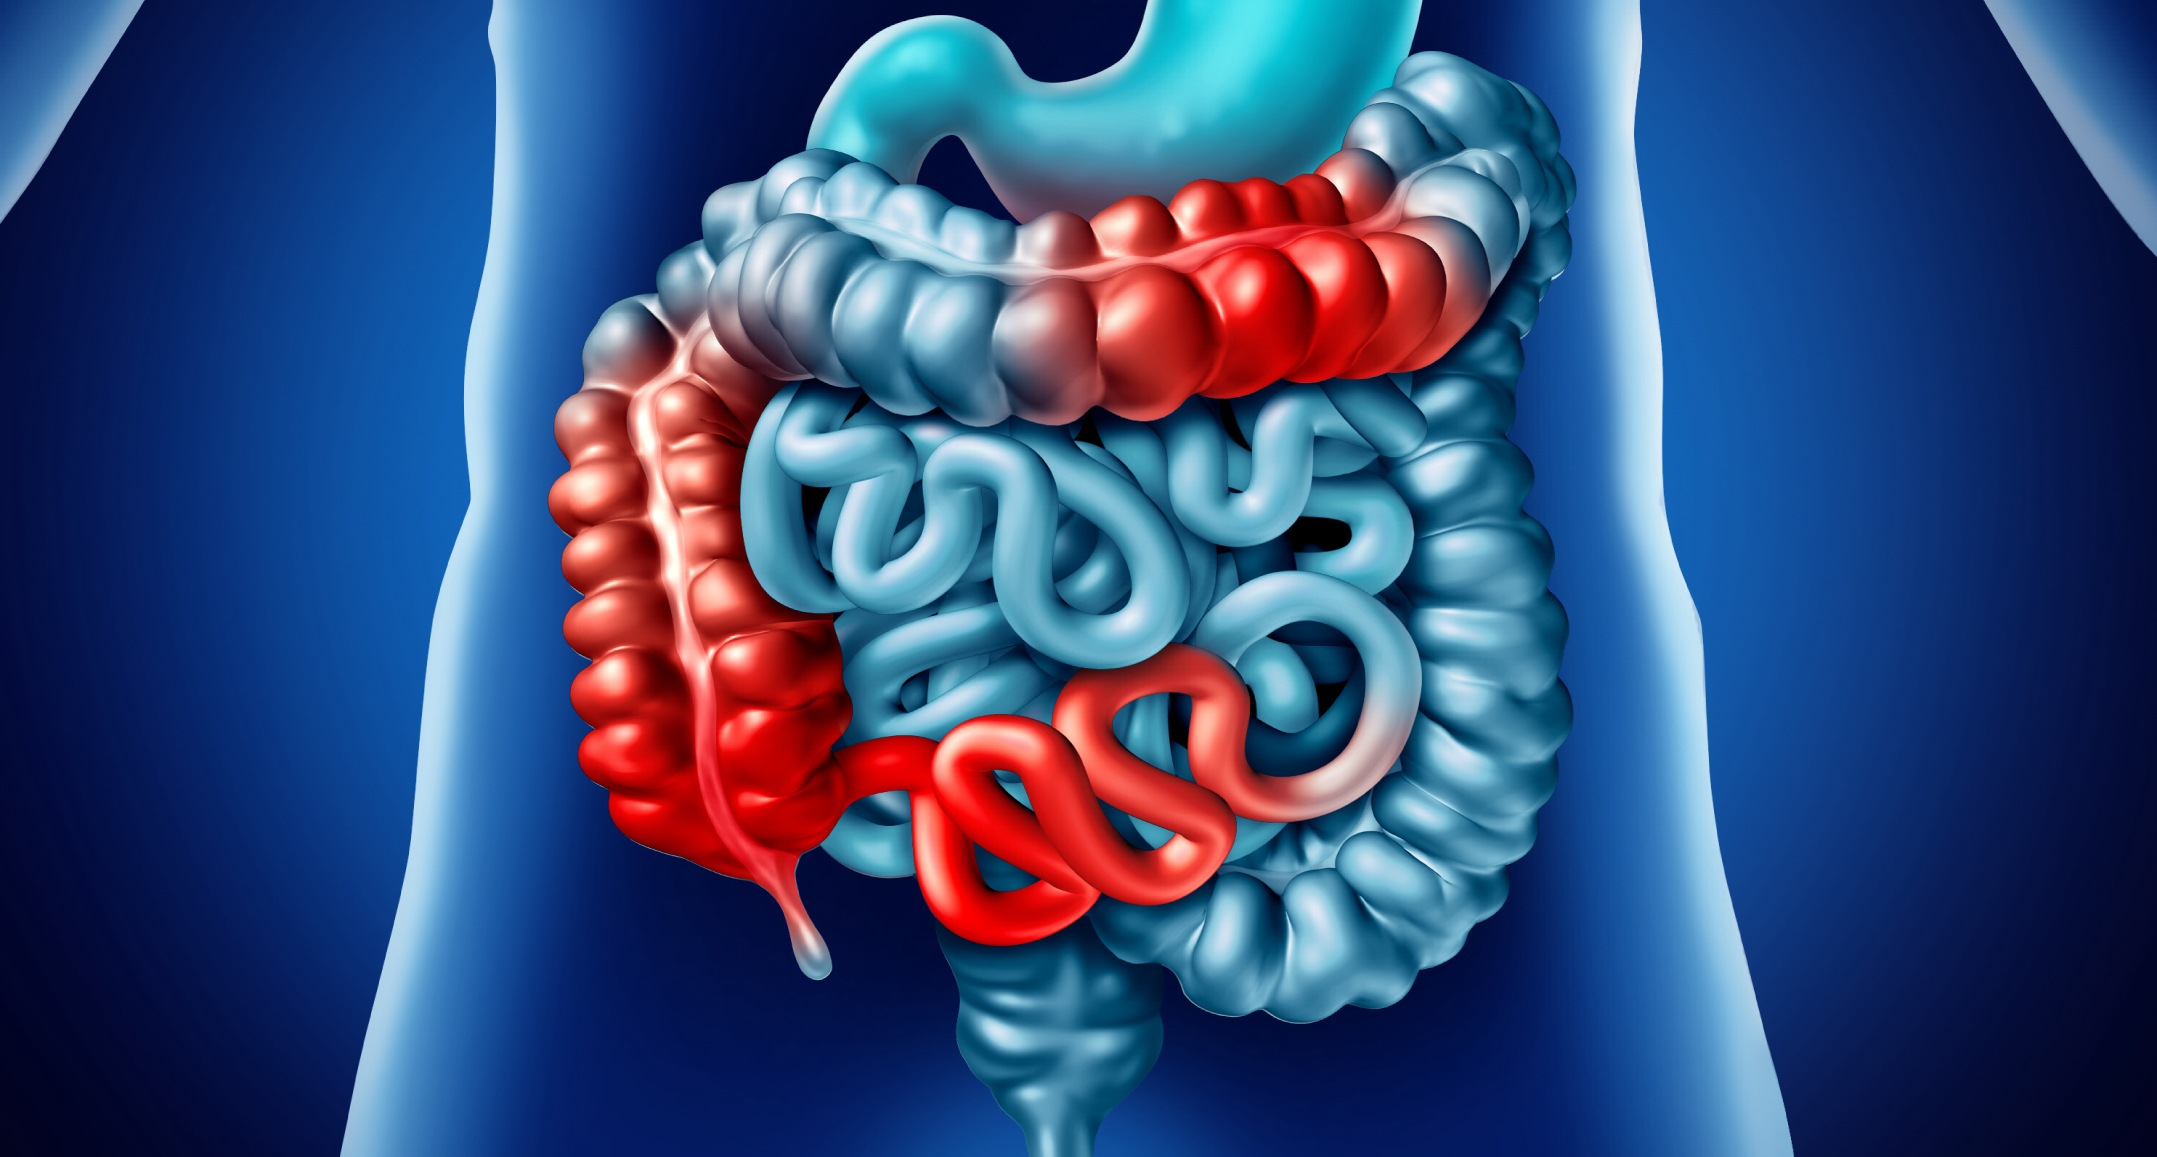 New research supports the contribution of the gut microbiota